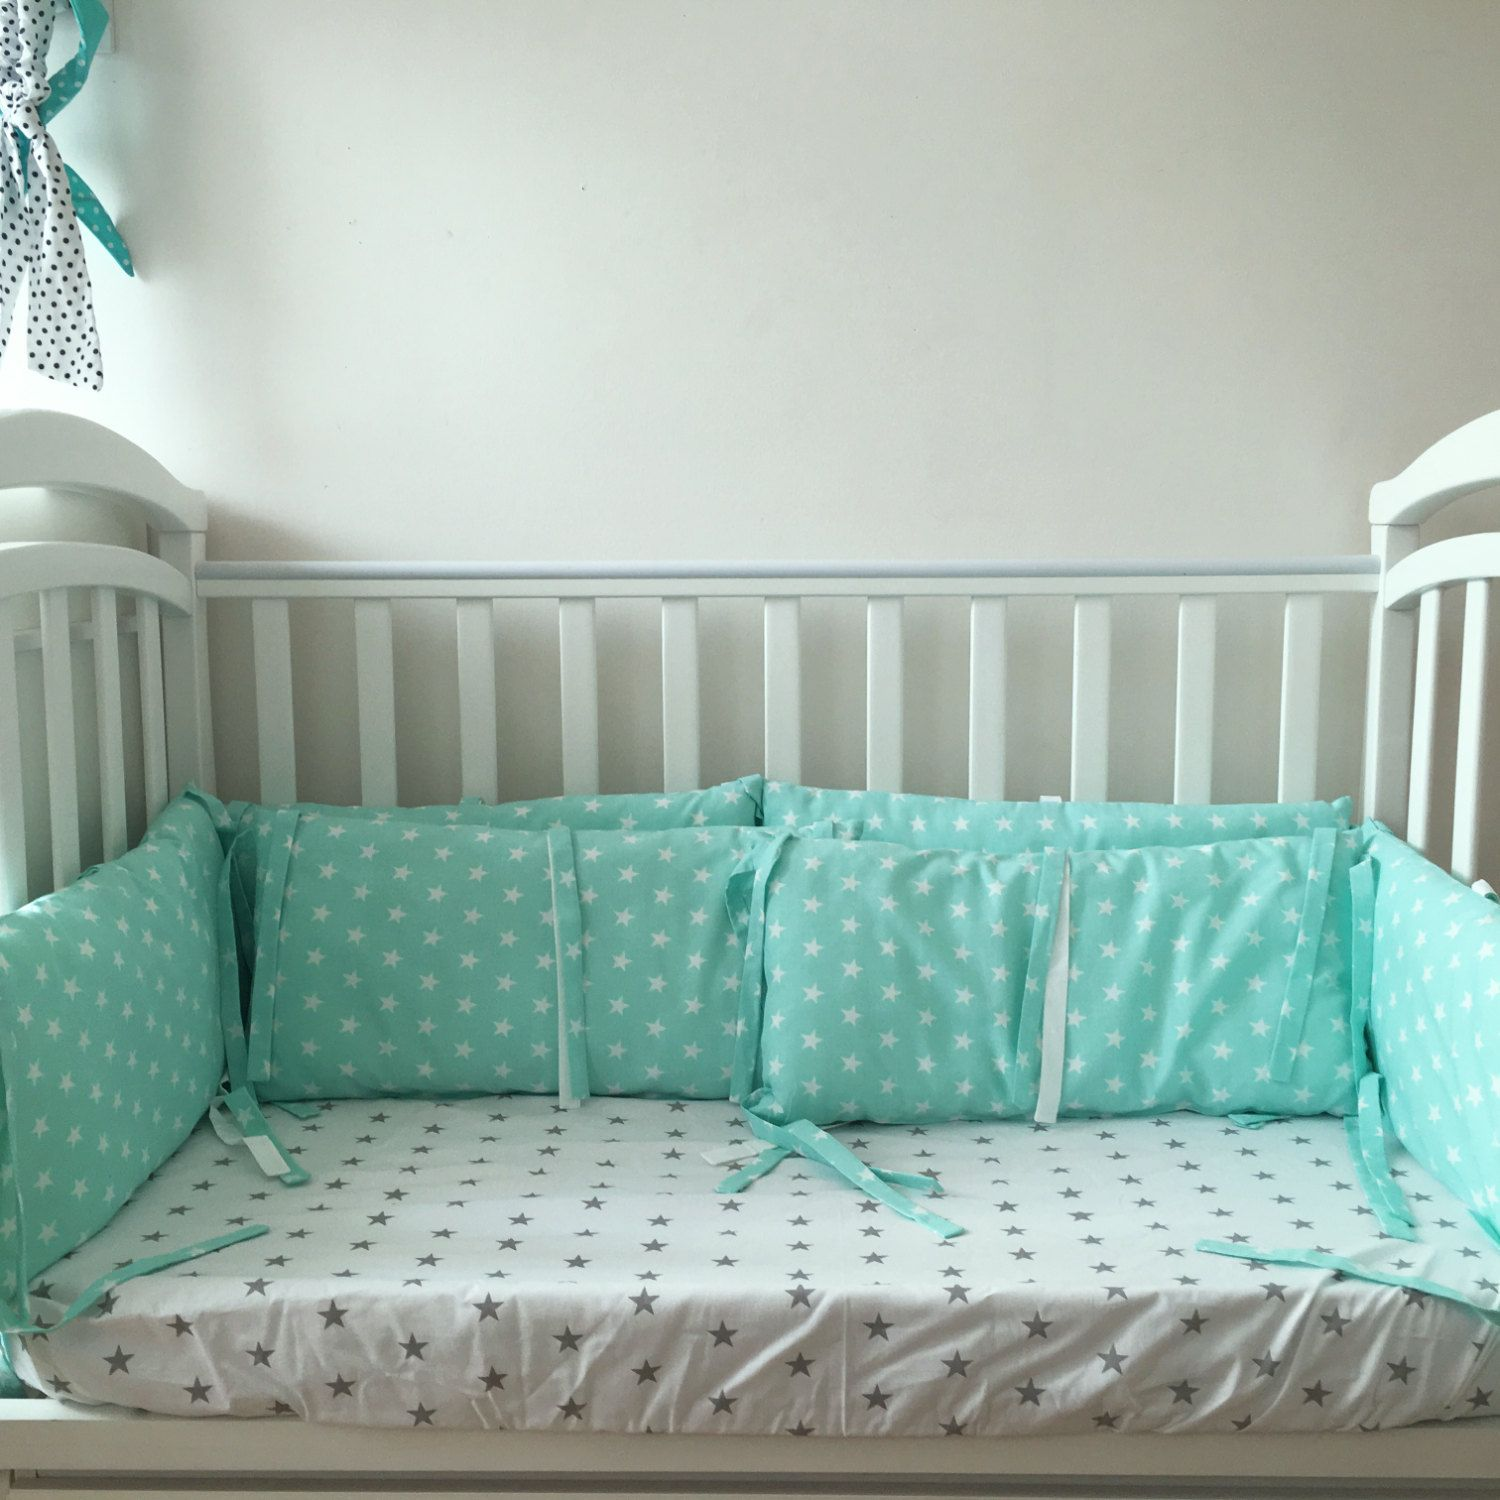 i had a so bumper diy baby crib totespreshbumper bumpers